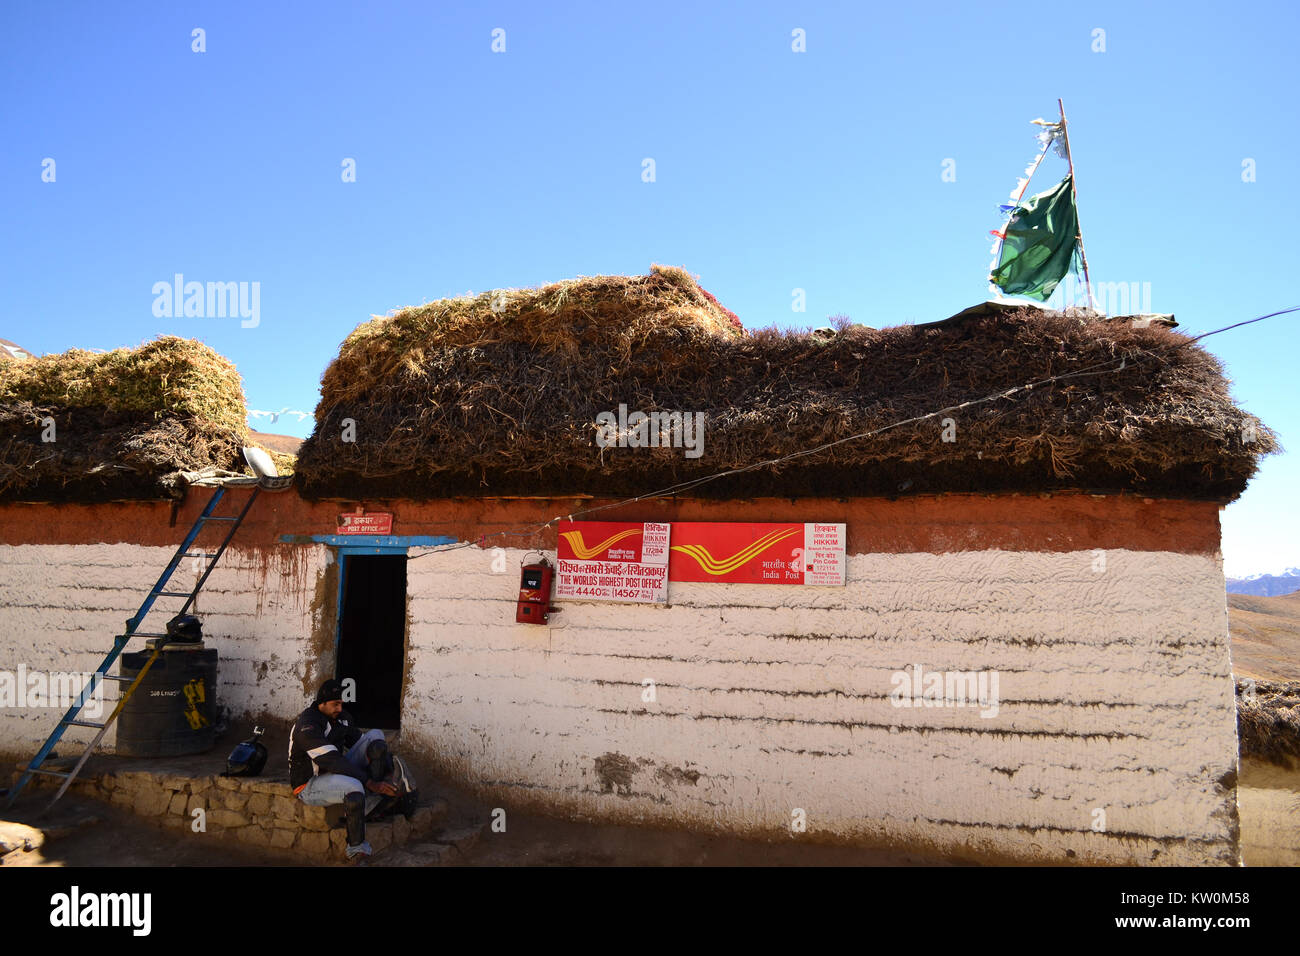 Highest Post office in the world. Hikkim, Himachal Pradesh - Stock Image